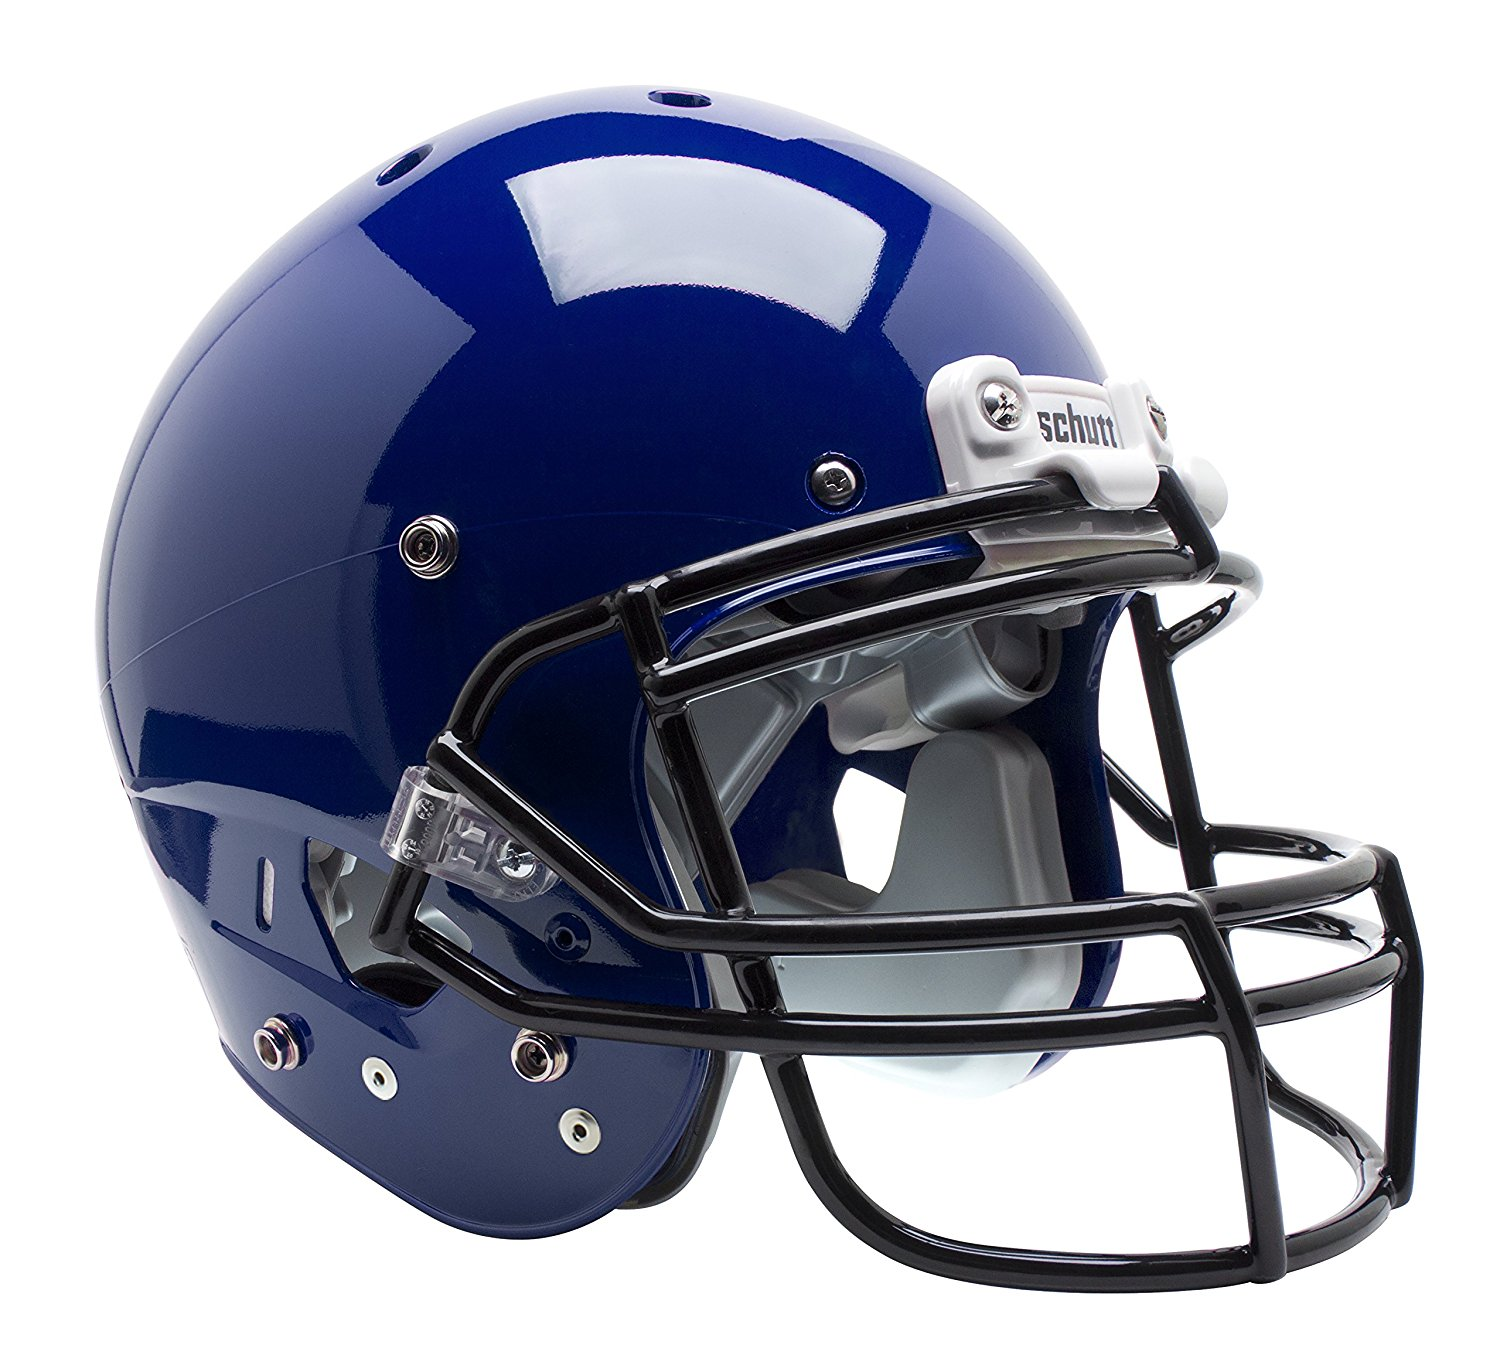 Schutt Adult Air Xp Pro Vtd II (No Mask) All Colors & Sizes